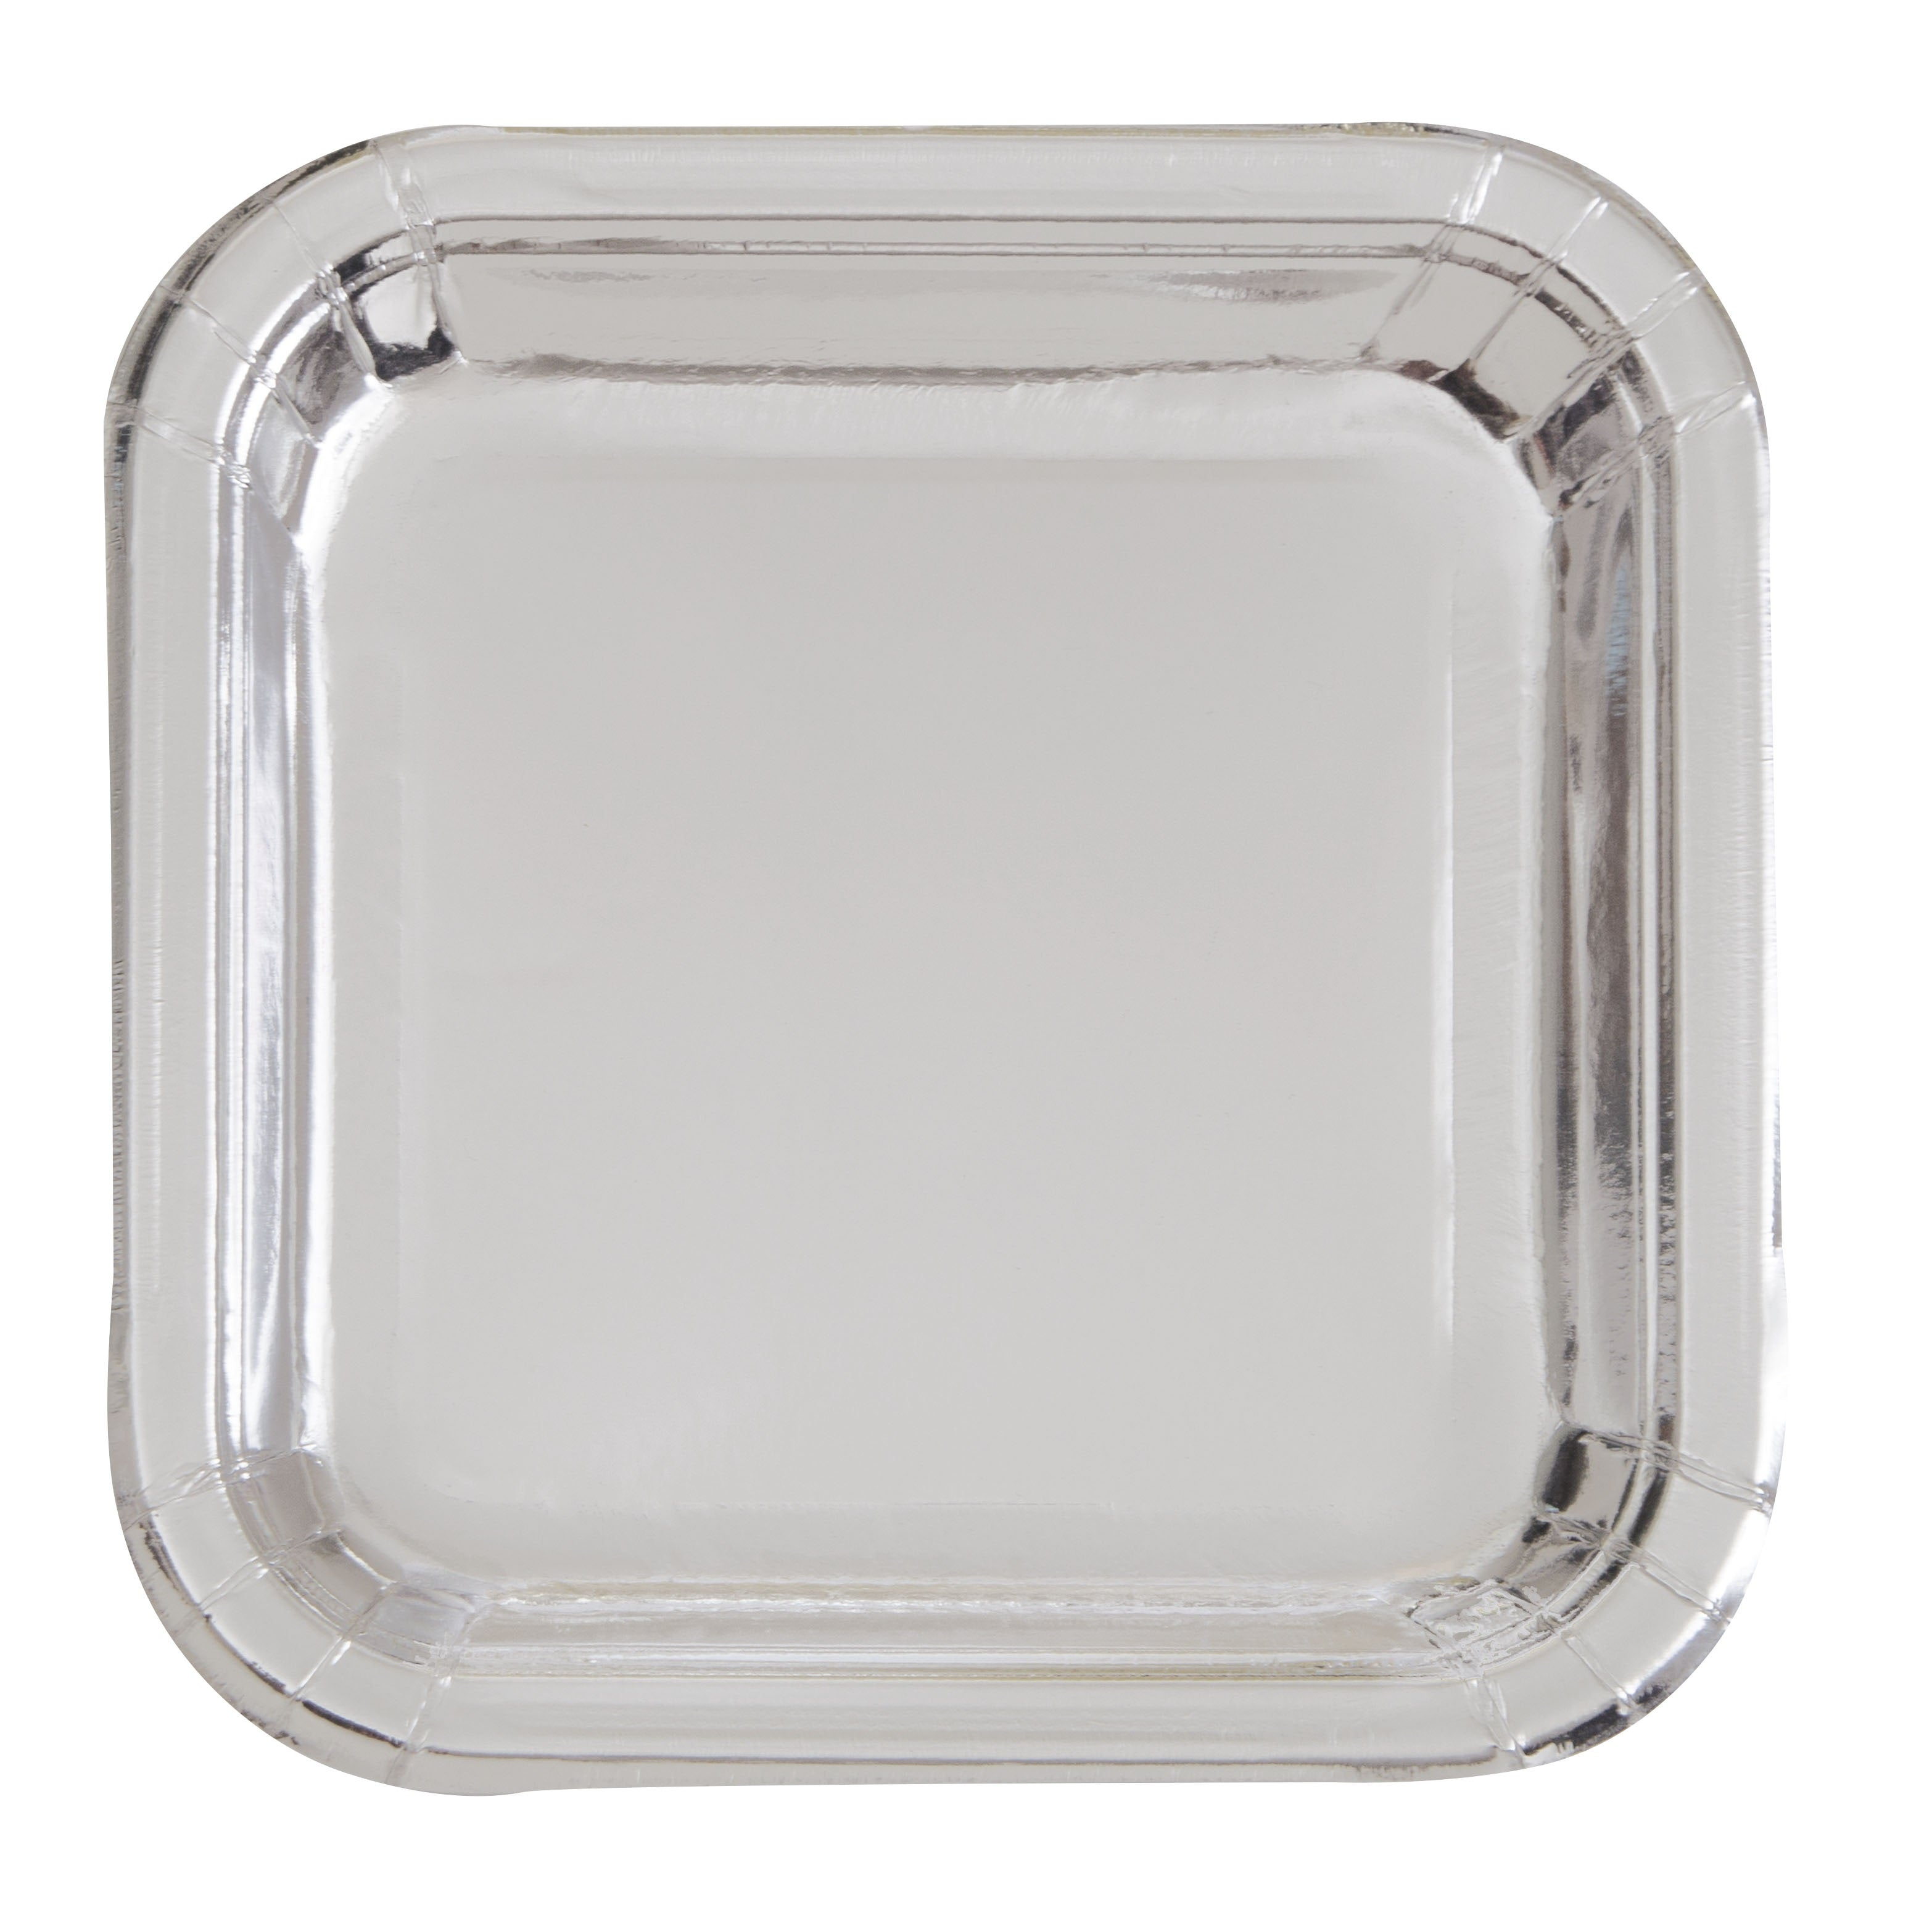 Silver Foil Square Buffet Plates - Uk Baby Shower Co ltd